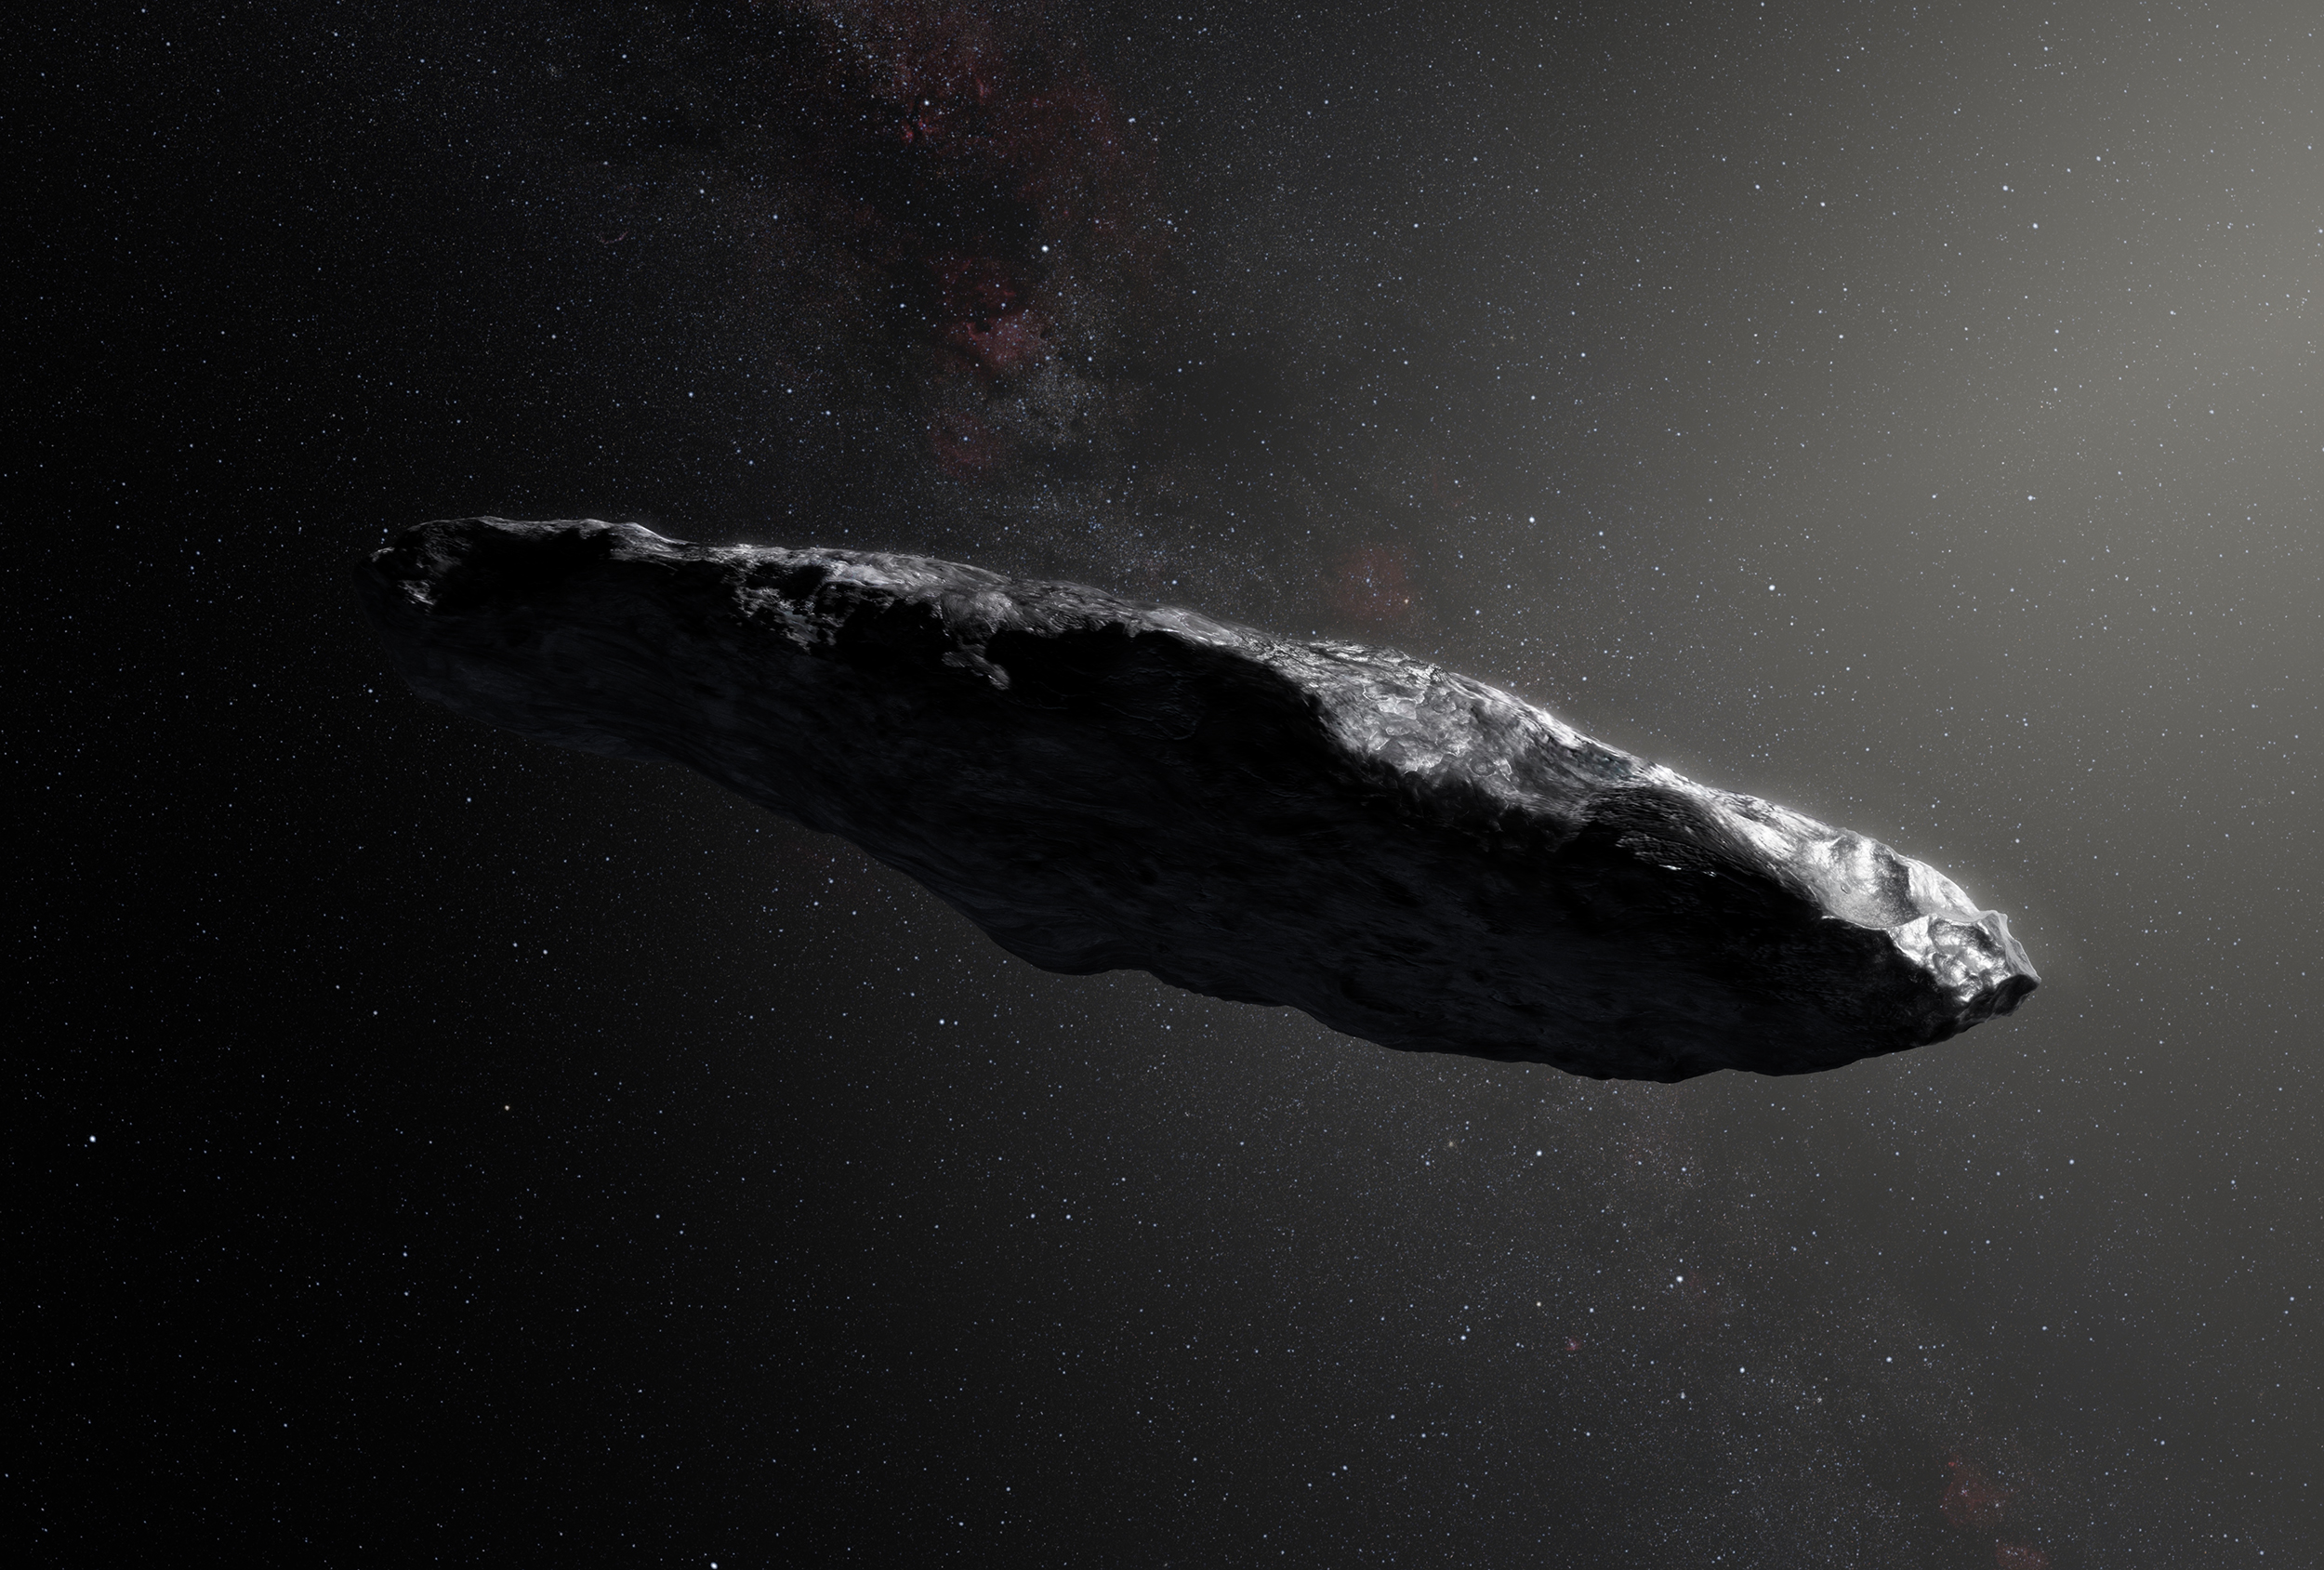 Is This Mysterious Space Rock Actually An Alien Spaceship